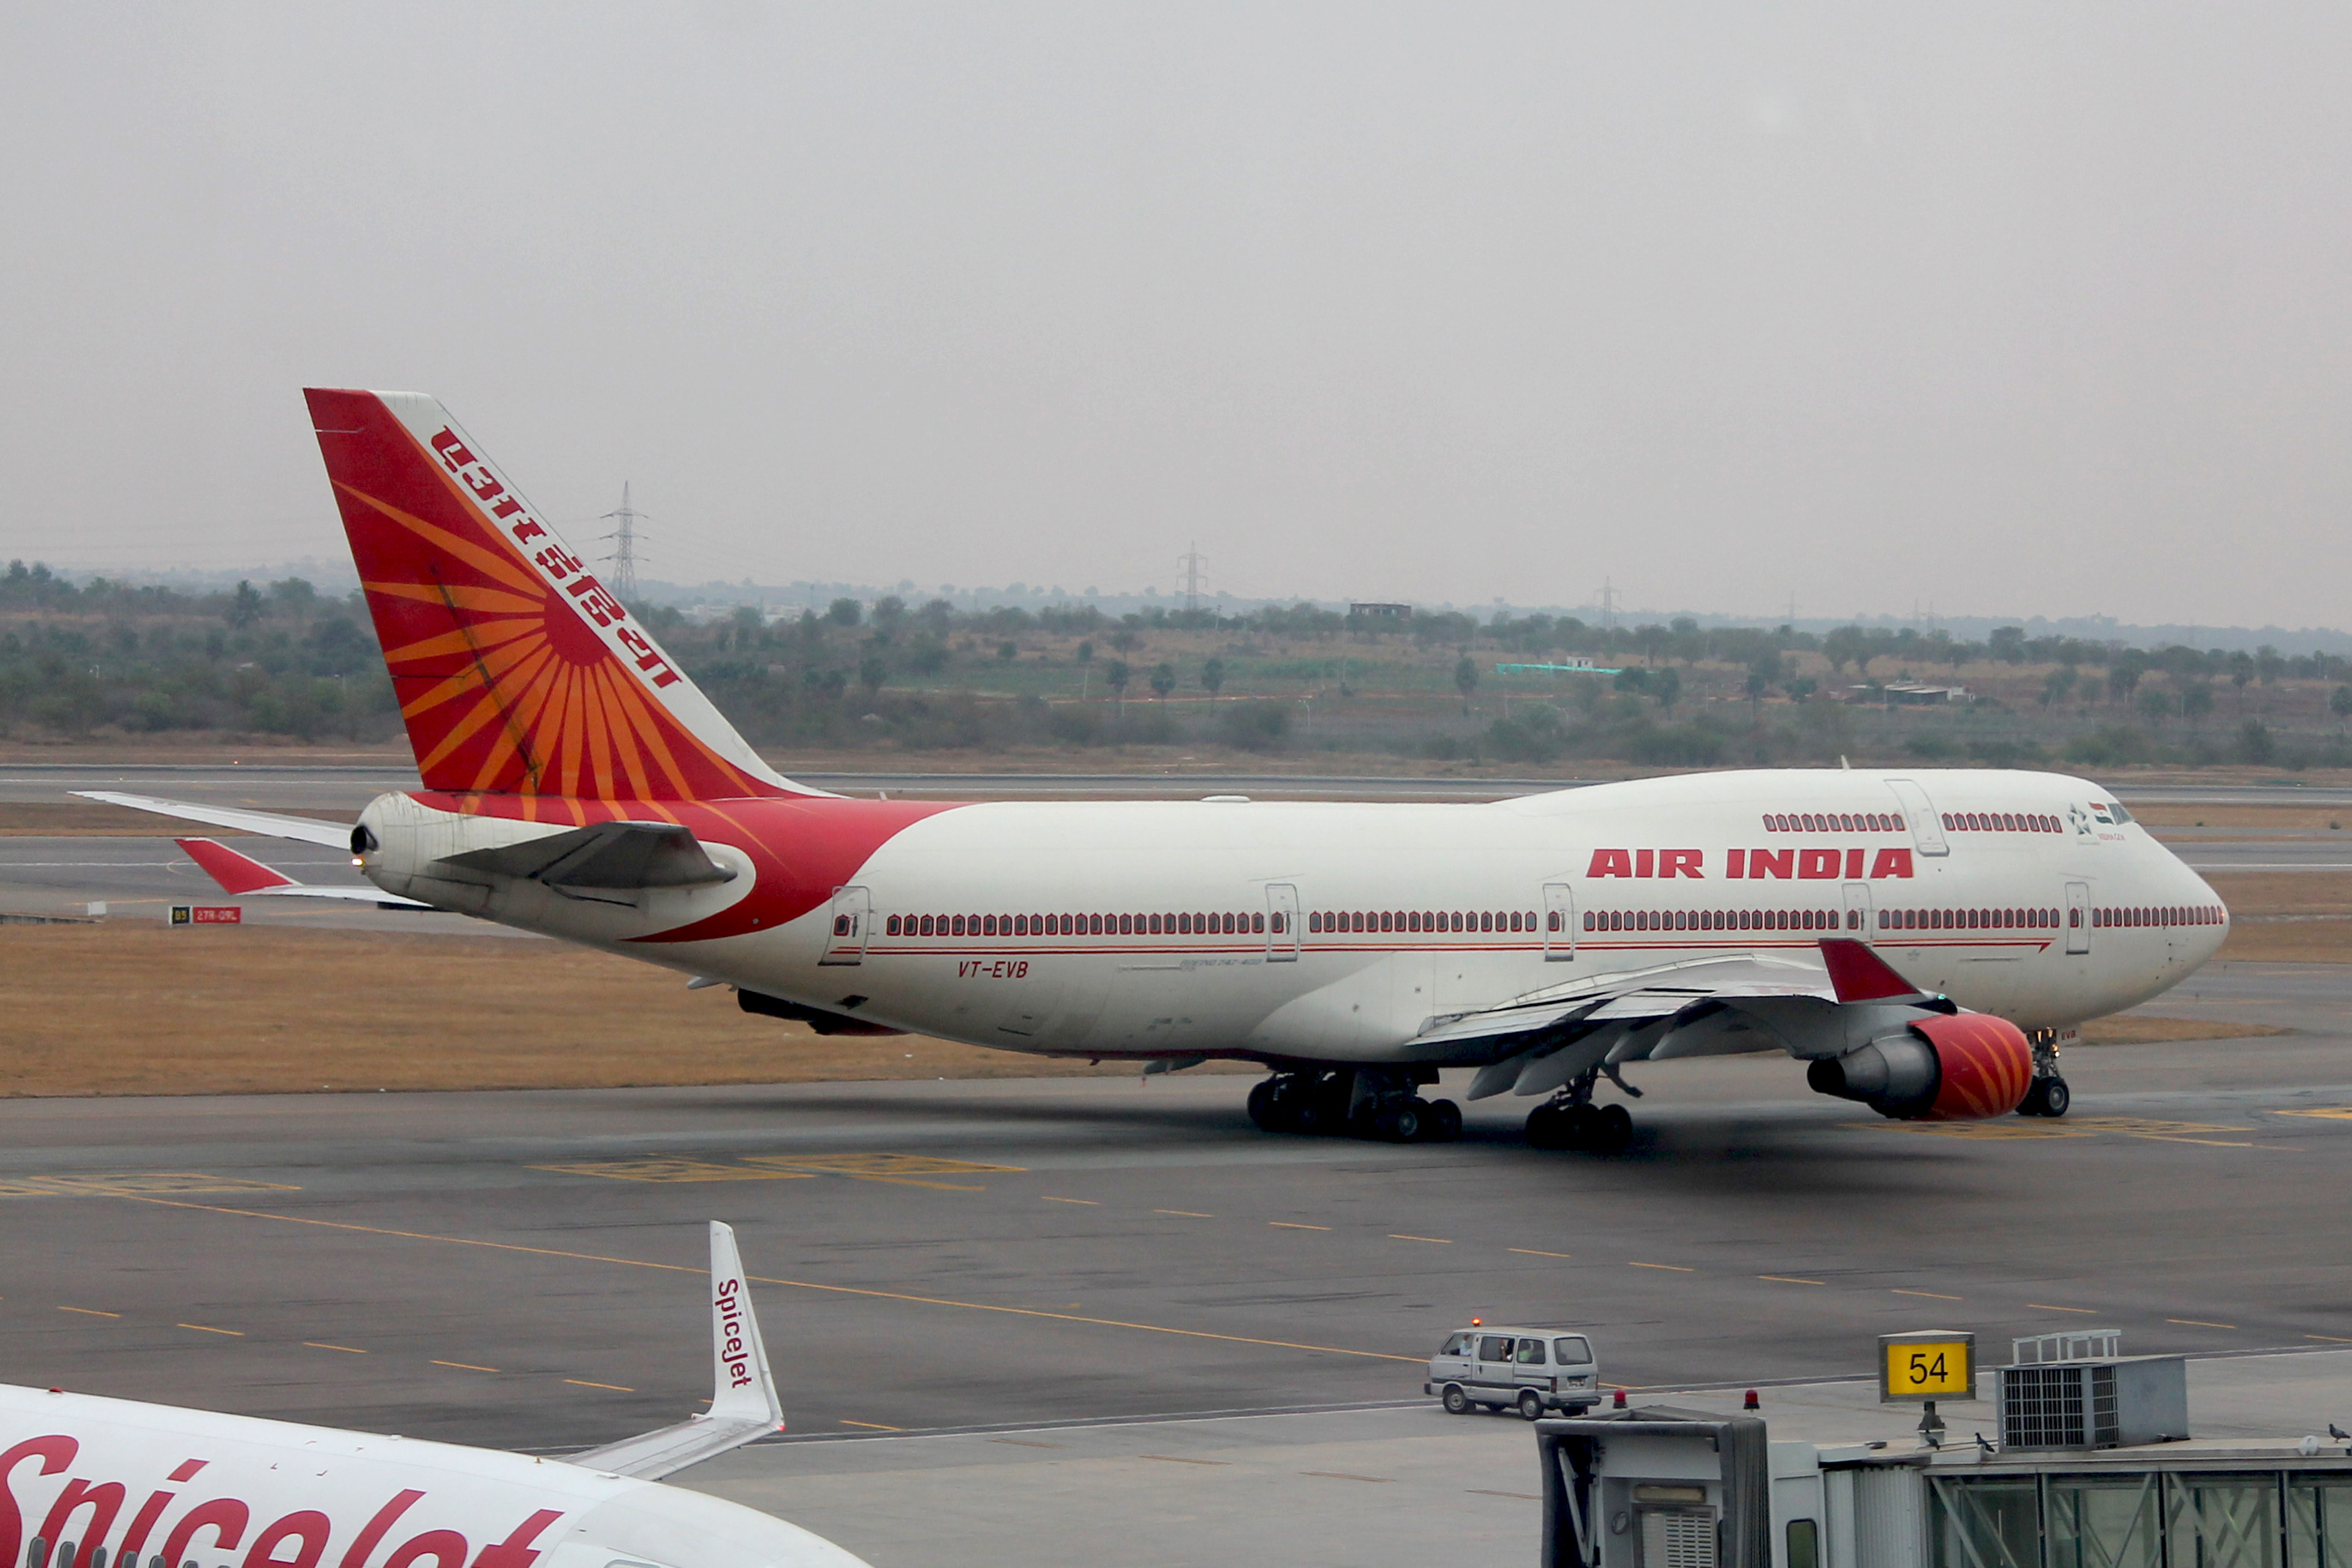 Air India, Boeing 747-437, Outdoor, Planes, Vehicle, Jetliner,